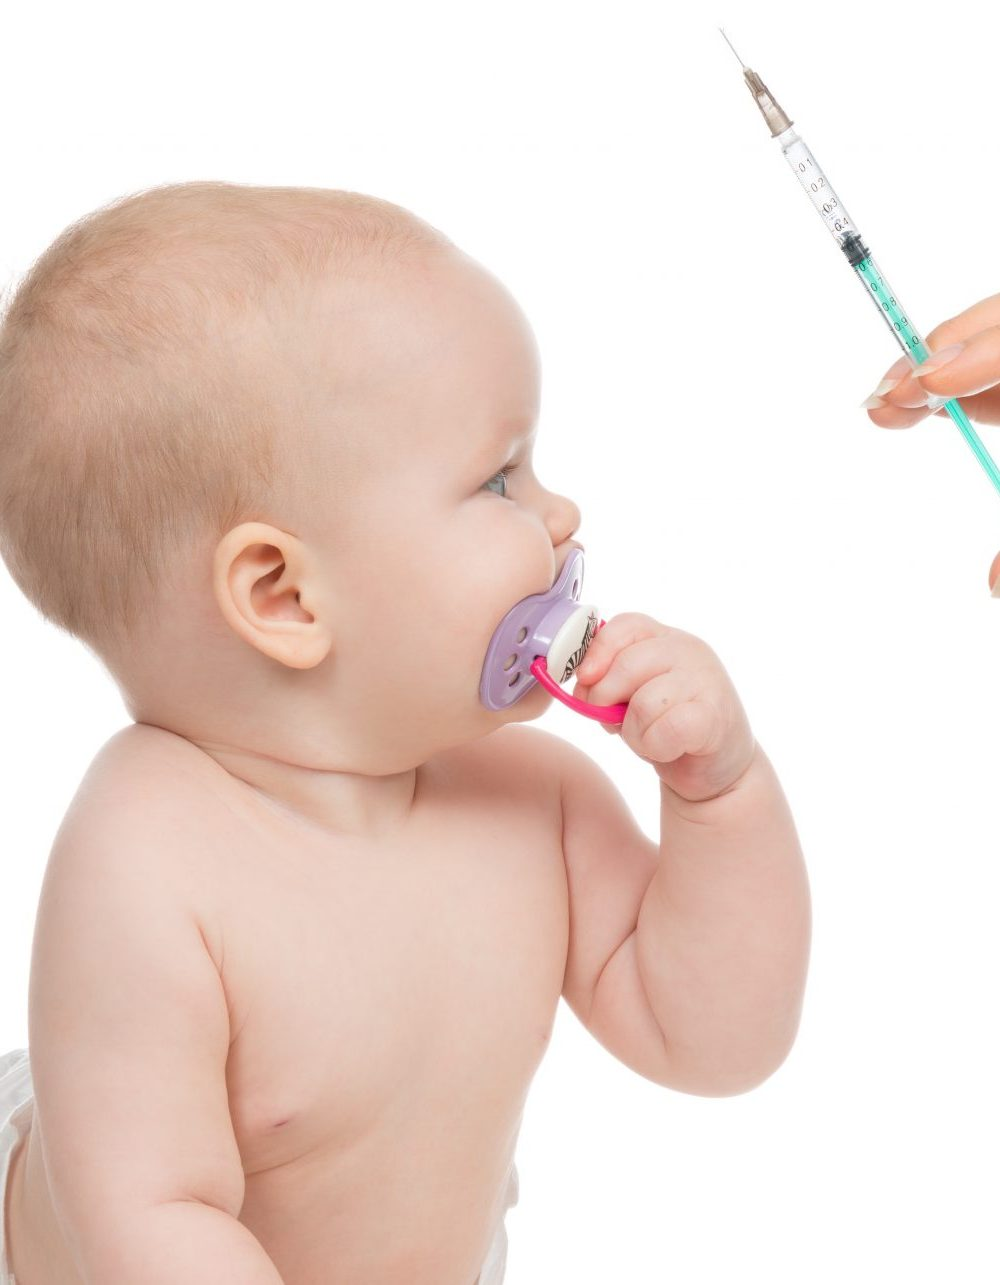 Vaccinations: the debate that gets ugly